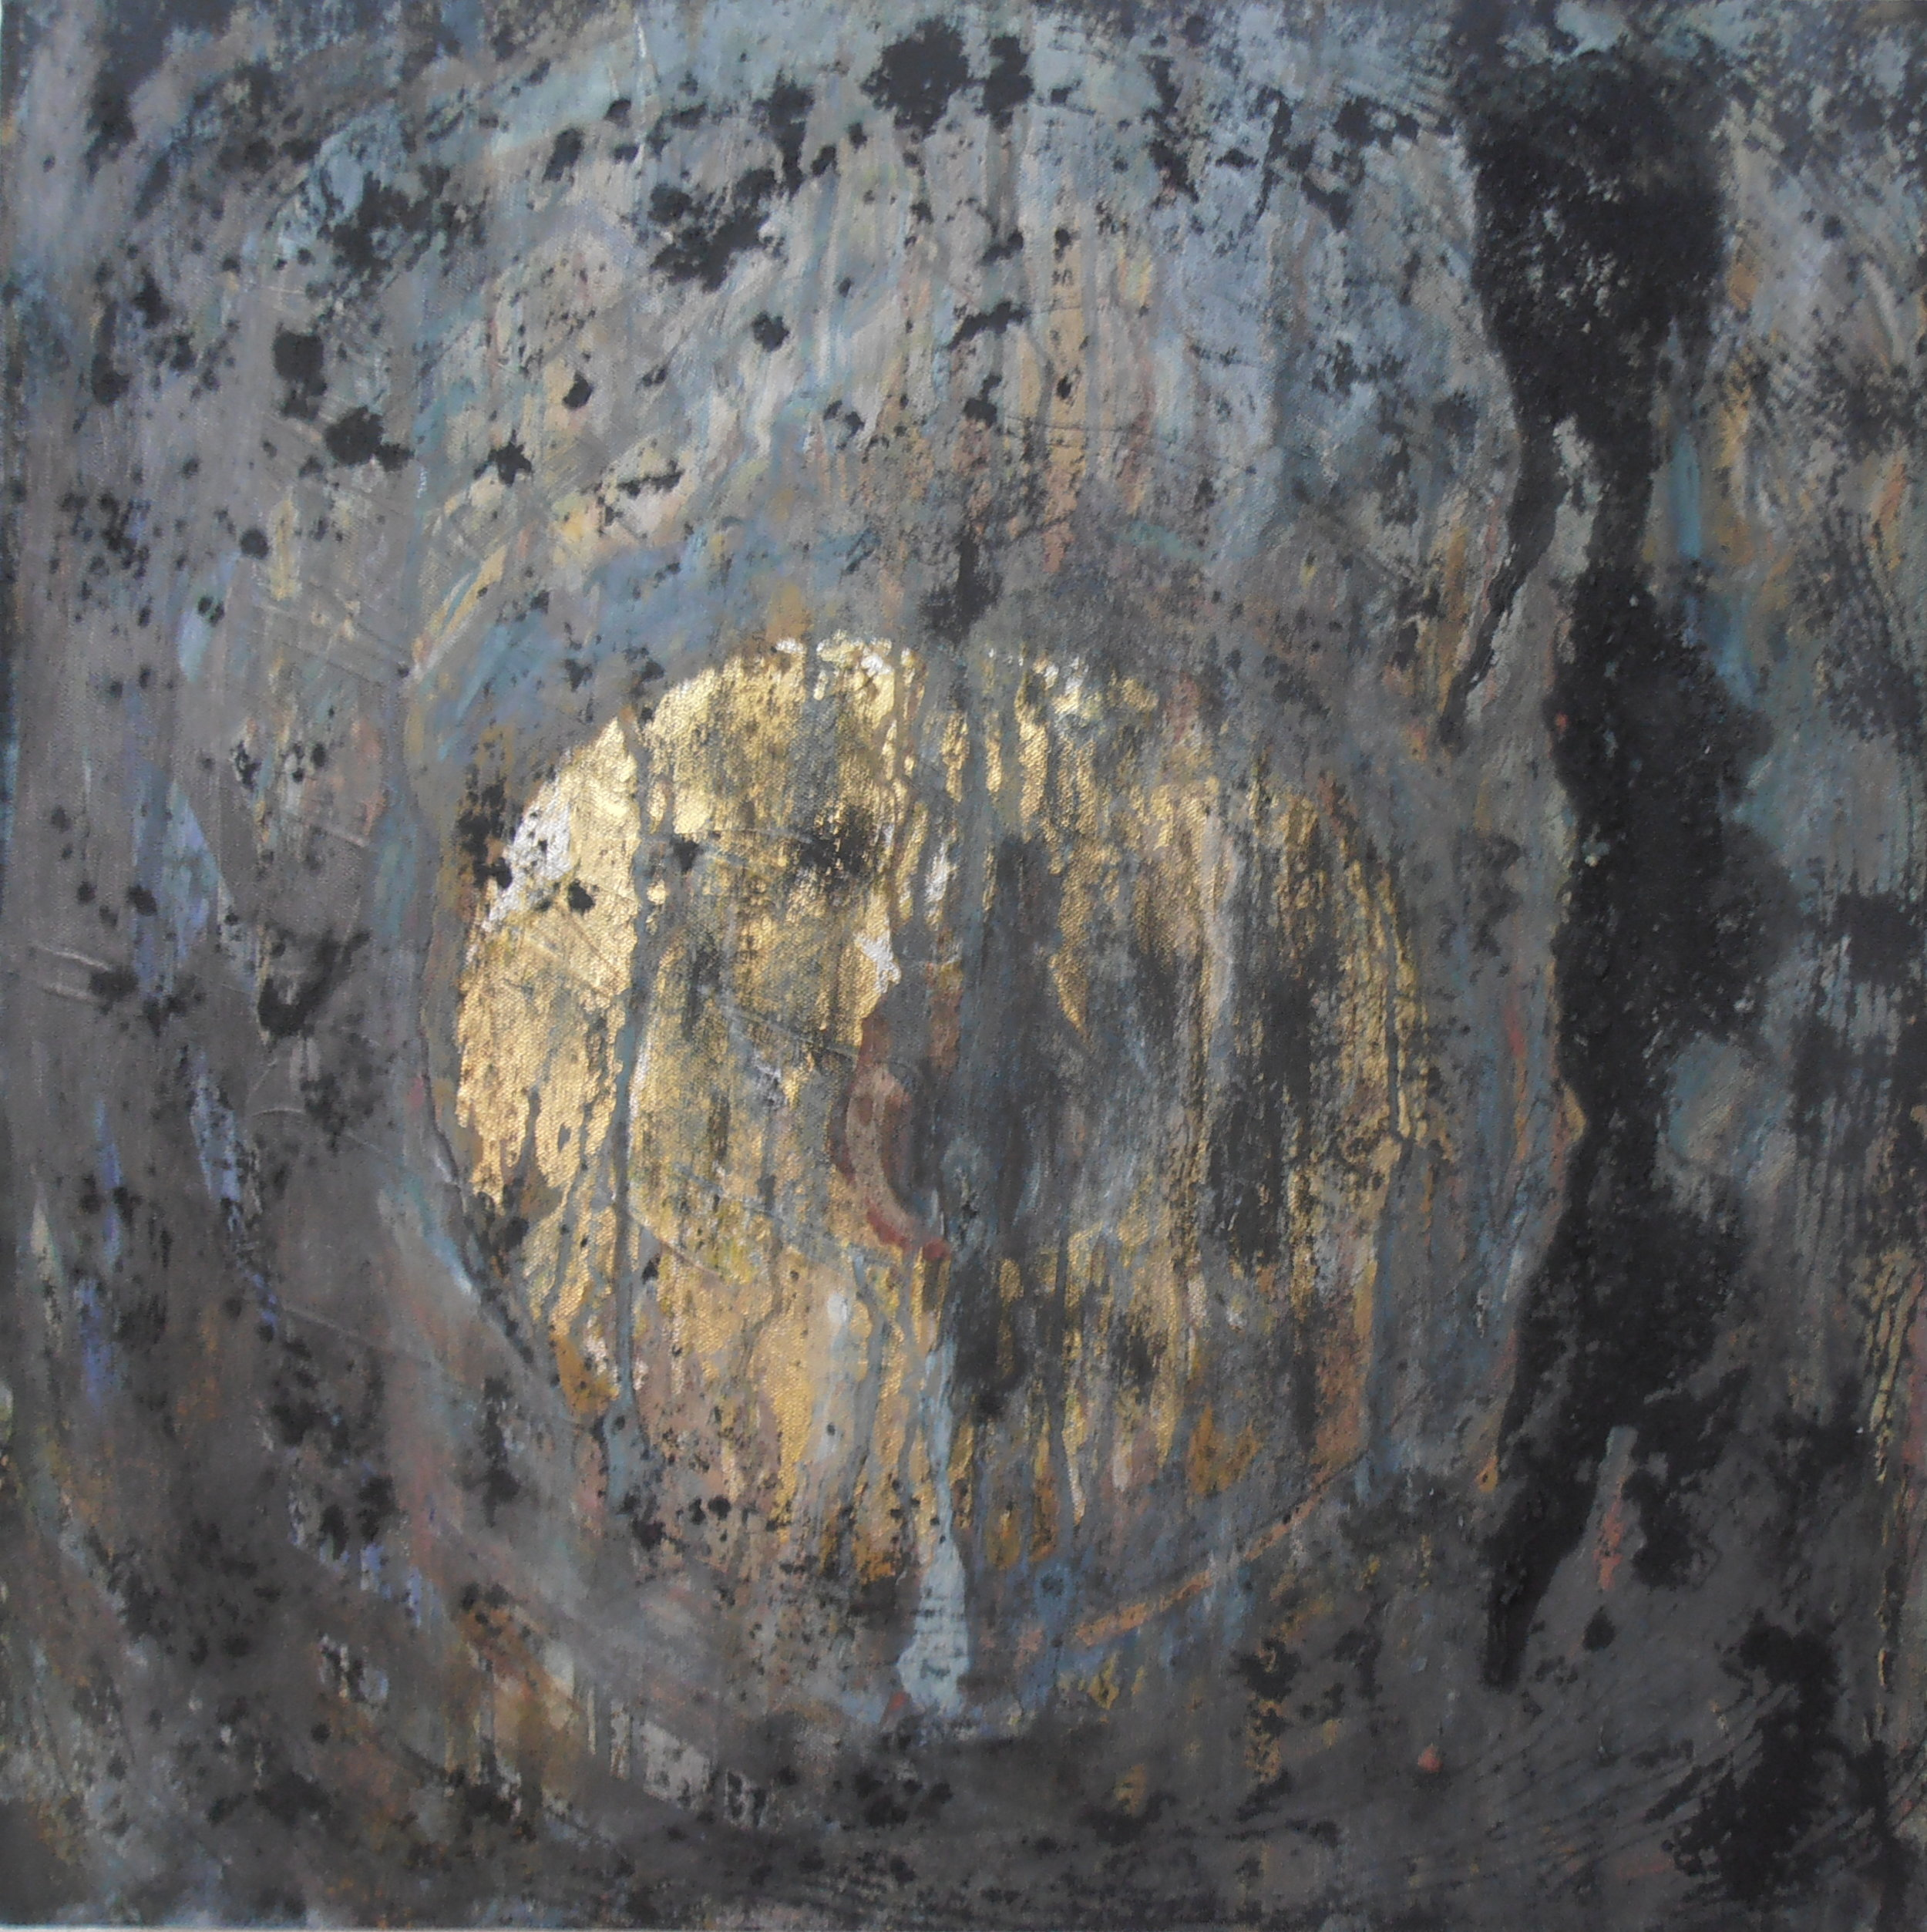 Hinemihi. Gold leaf, charcoal and pigment on canvas. 80 x 80 cm. 2014.